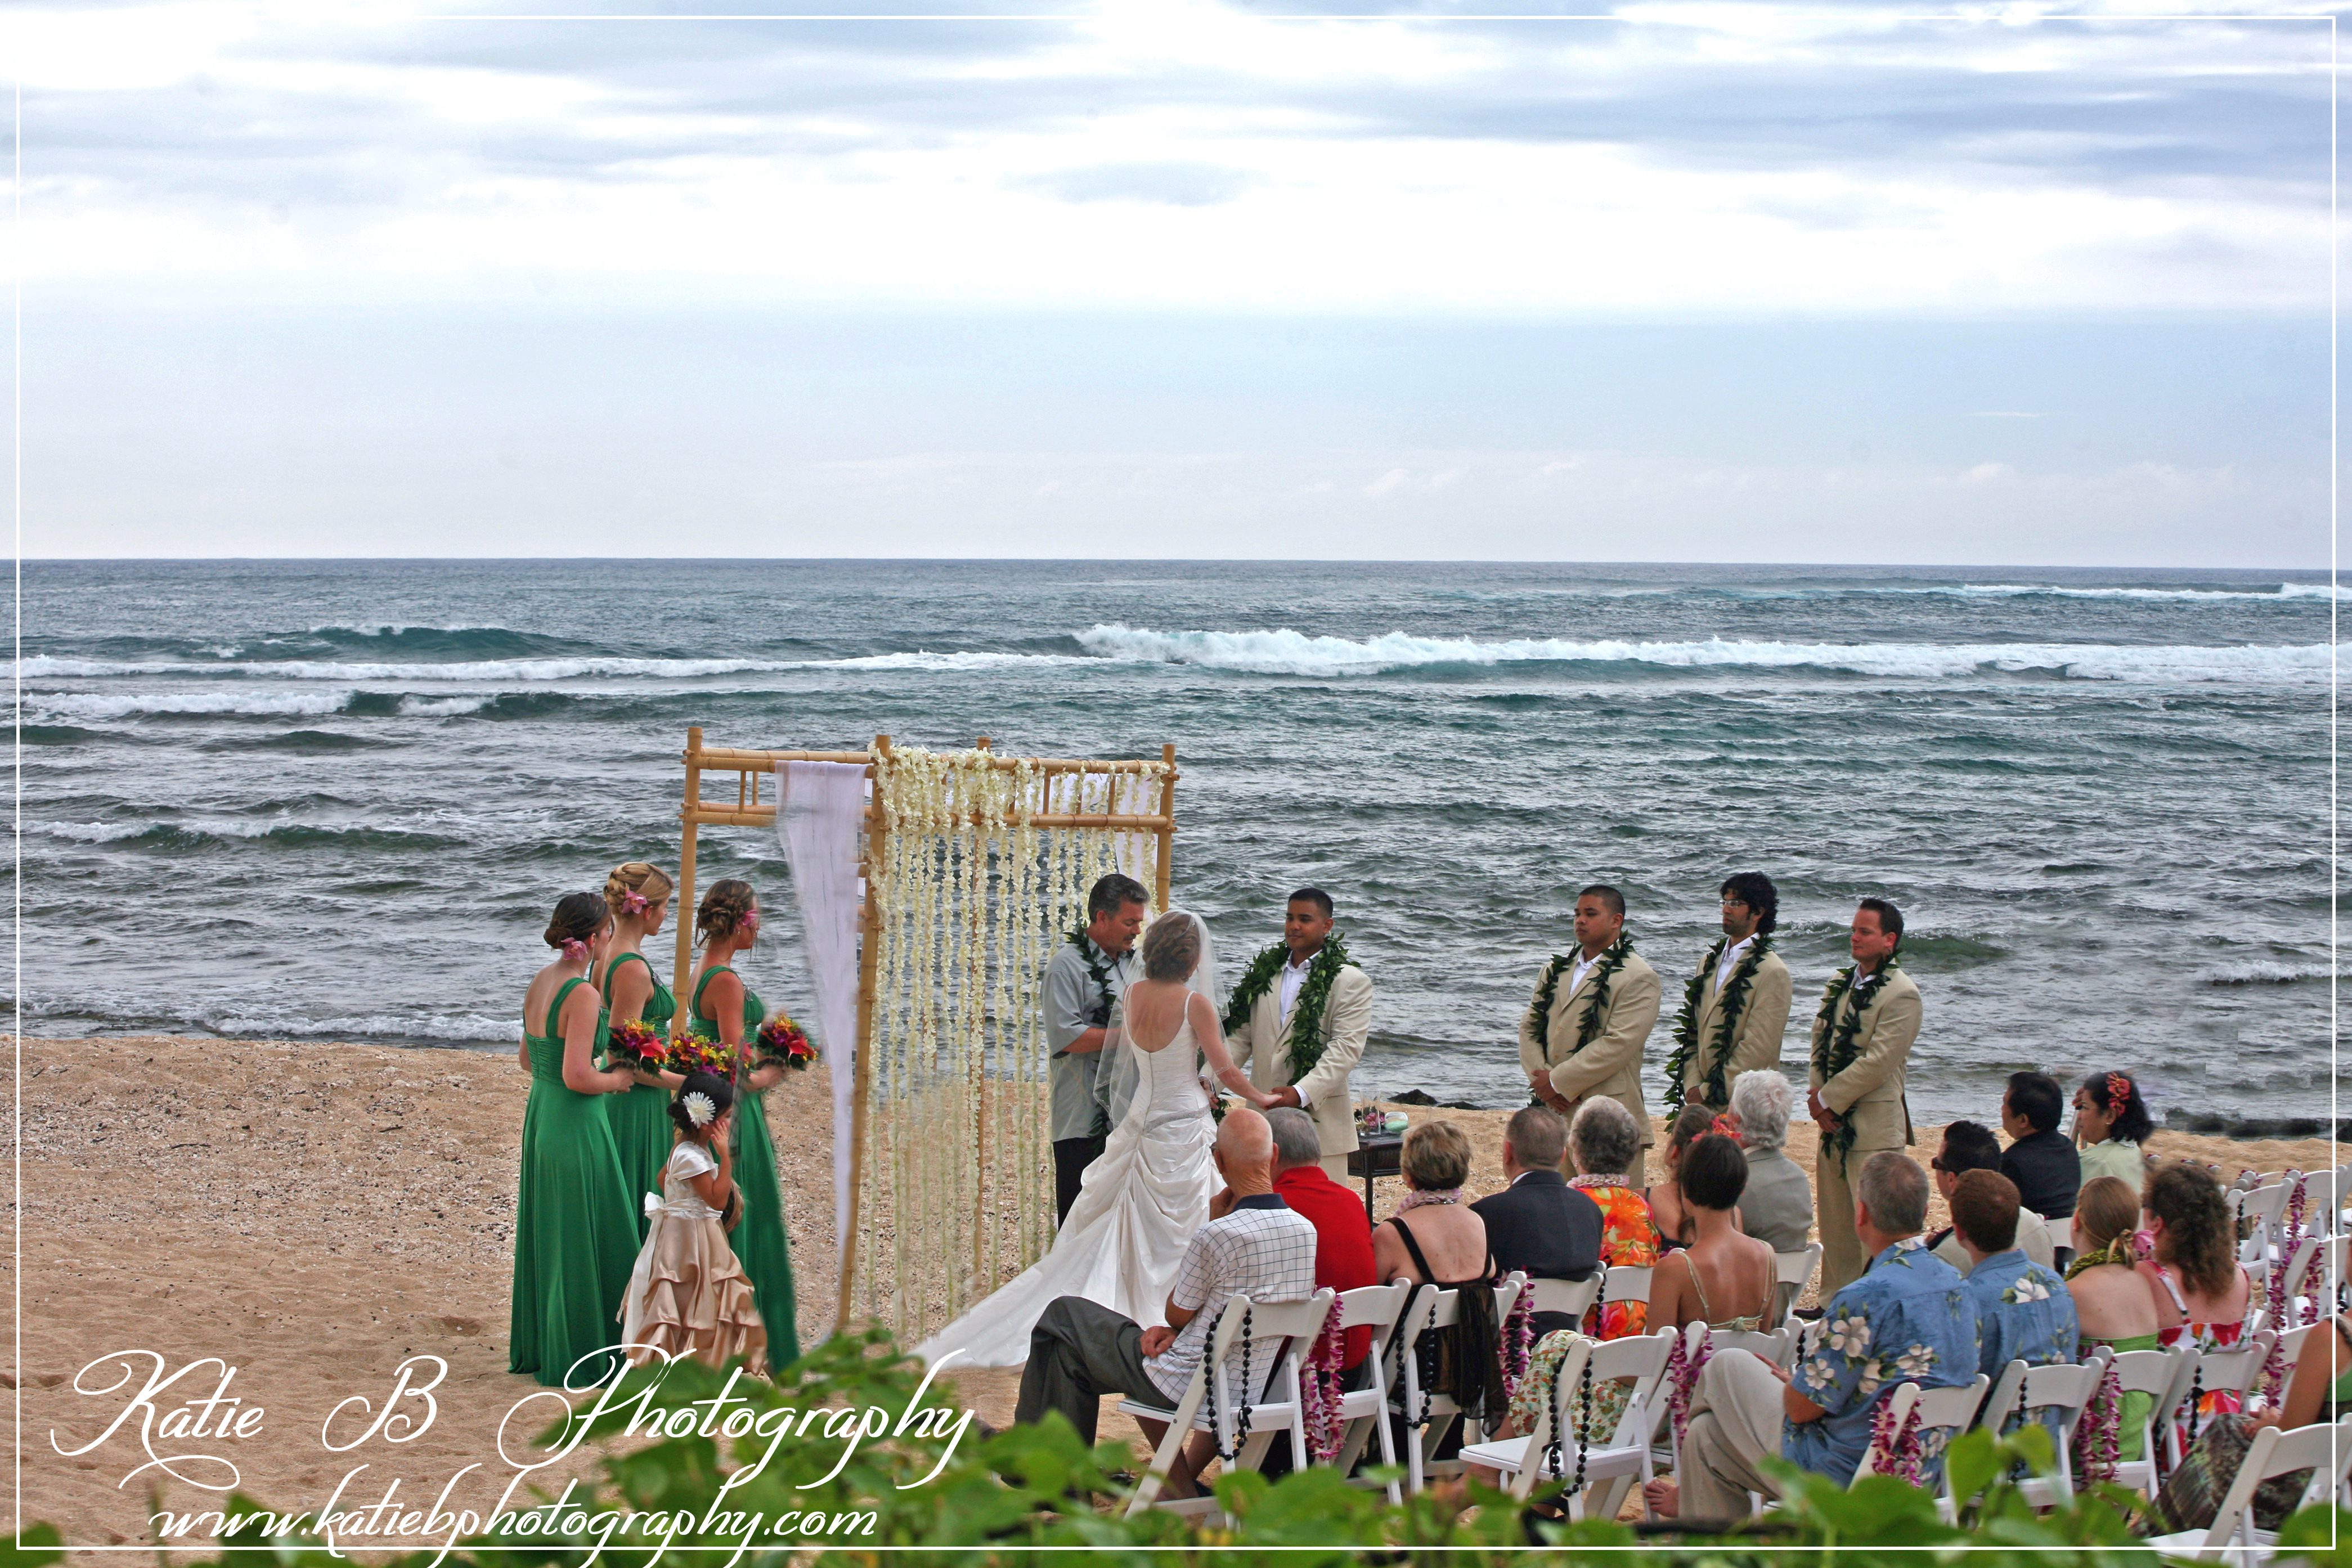 Ceremony, Flowers & Decor, Decor, Bridesmaids, Bridesmaids Dresses, Wedding Dresses, Destinations, Fashion, white, yellow, orange, pink, red, purple, green, dress, Hawaii, Ceremony Flowers, Bridesmaid Bouquets, Groomsmen, Flowers, Ocean, Estate, Palm, Katie b photography, Loulu, Flower Wedding Dresses